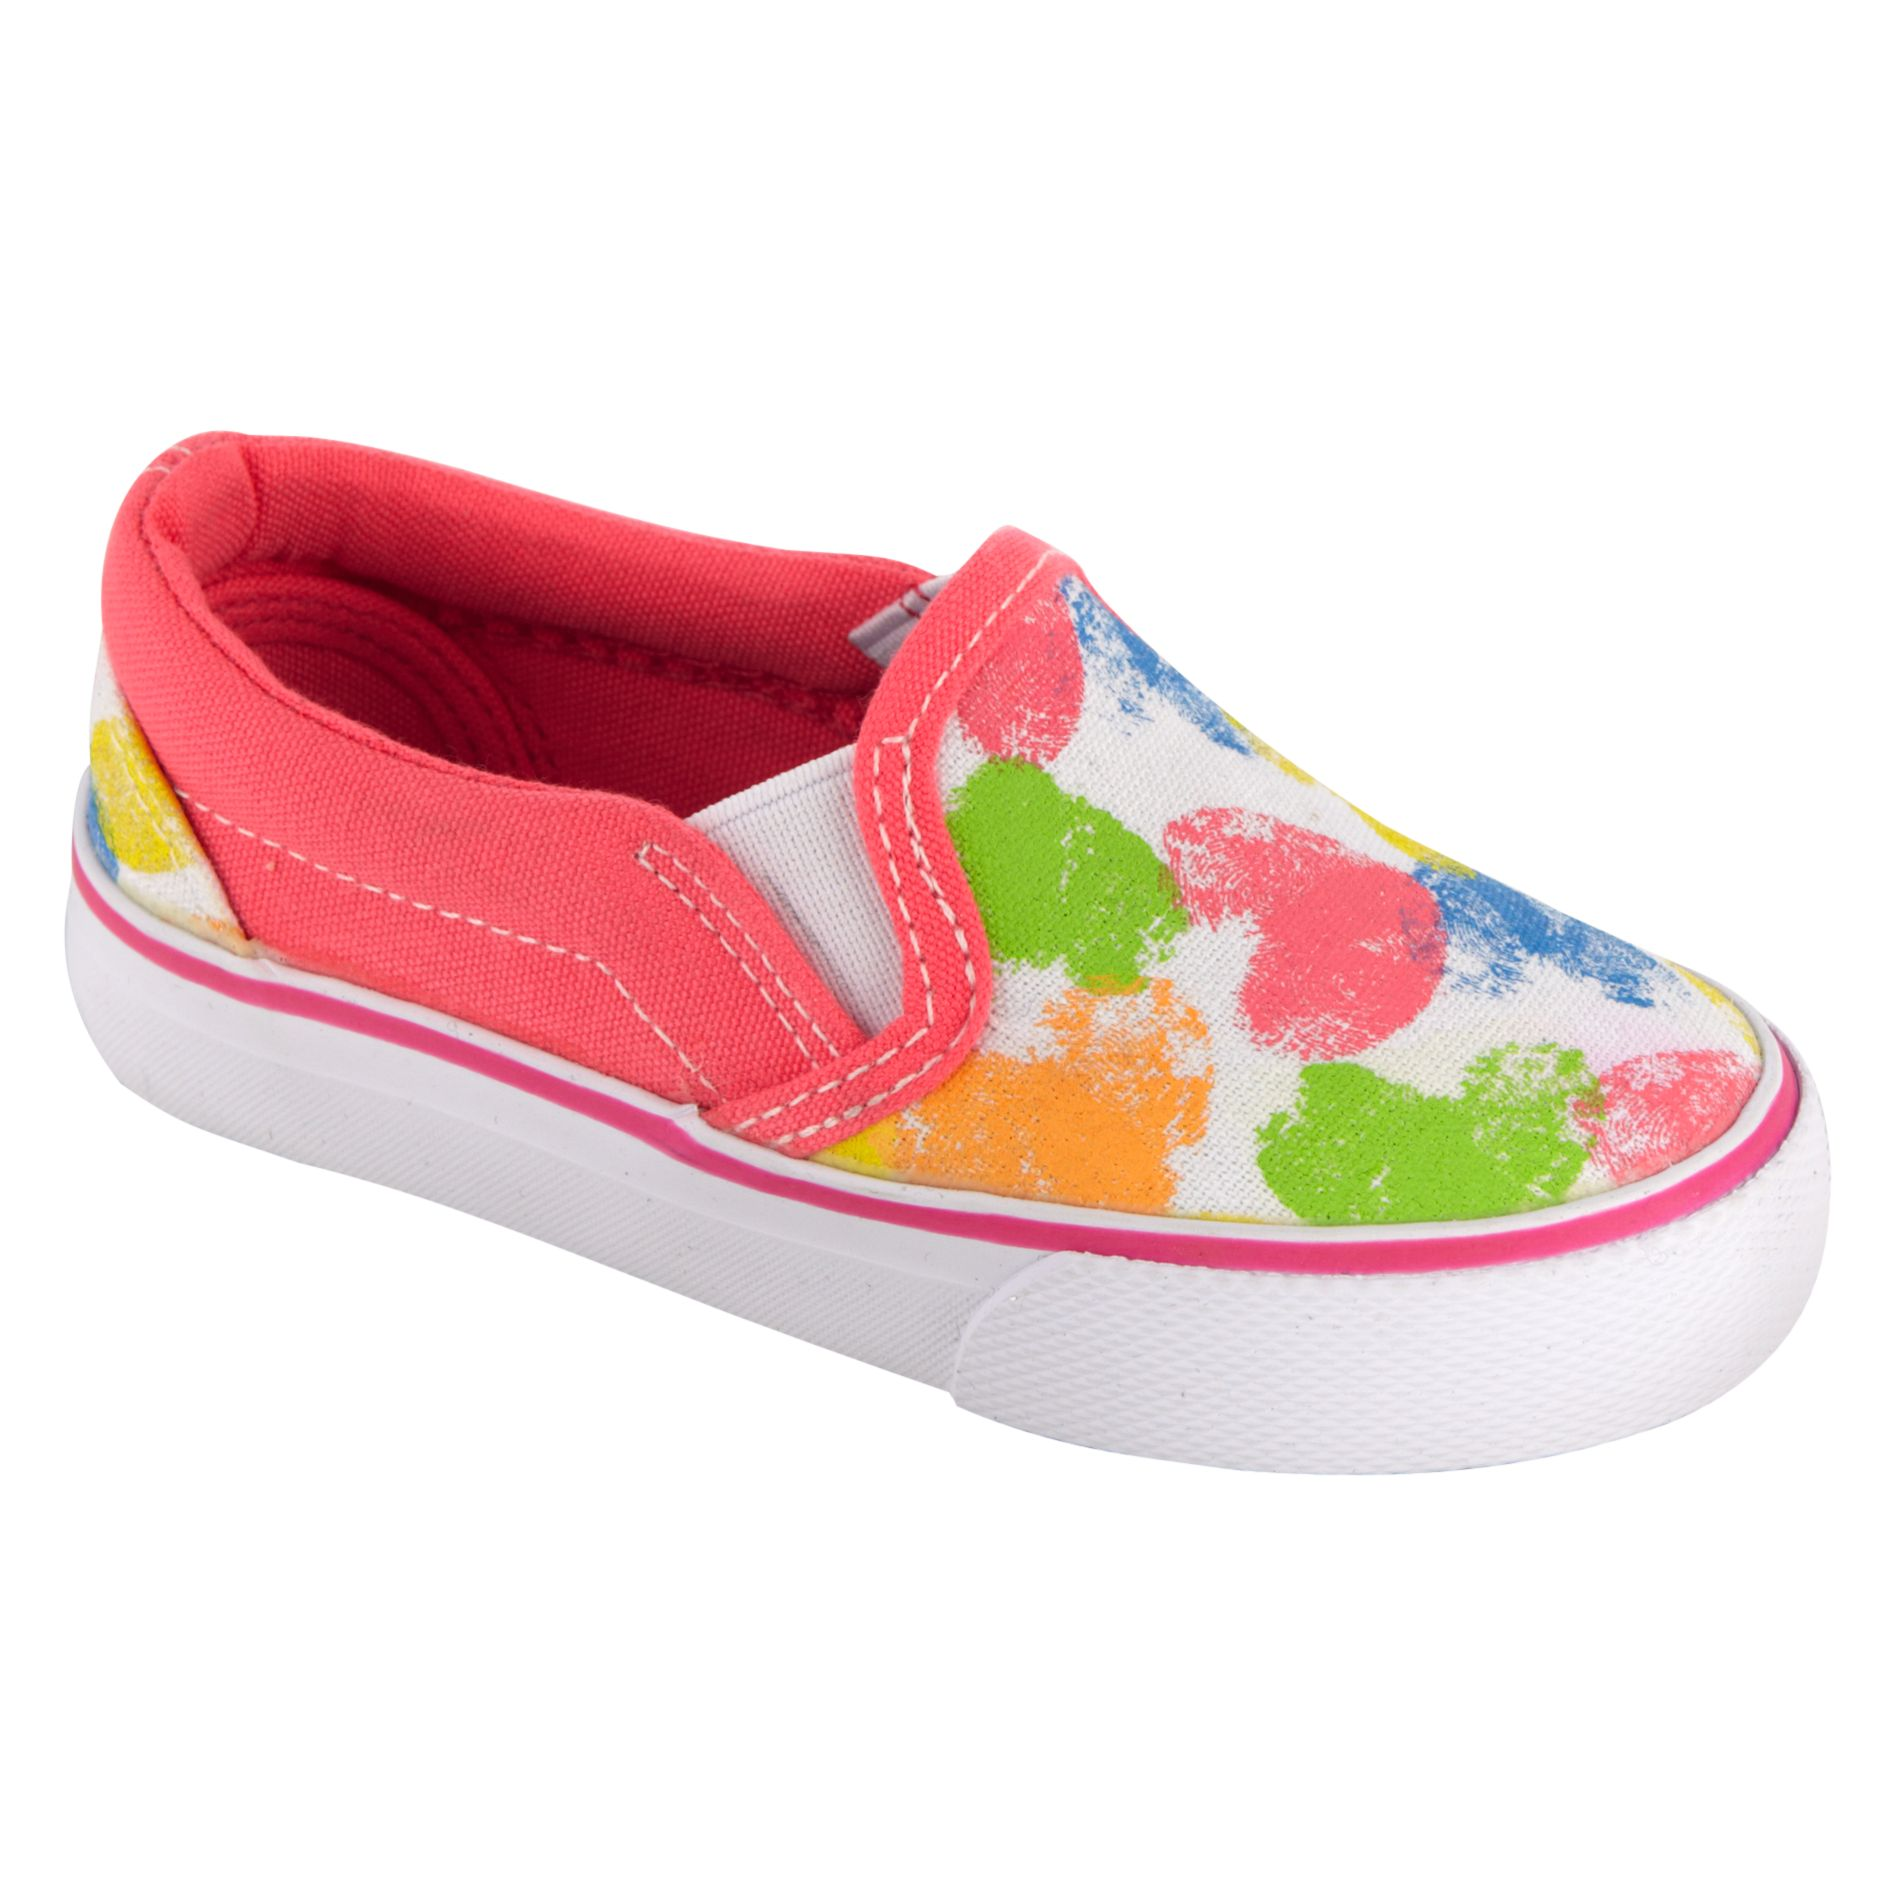 Joe Boxer  Toddler Girl's Casual Slip-On